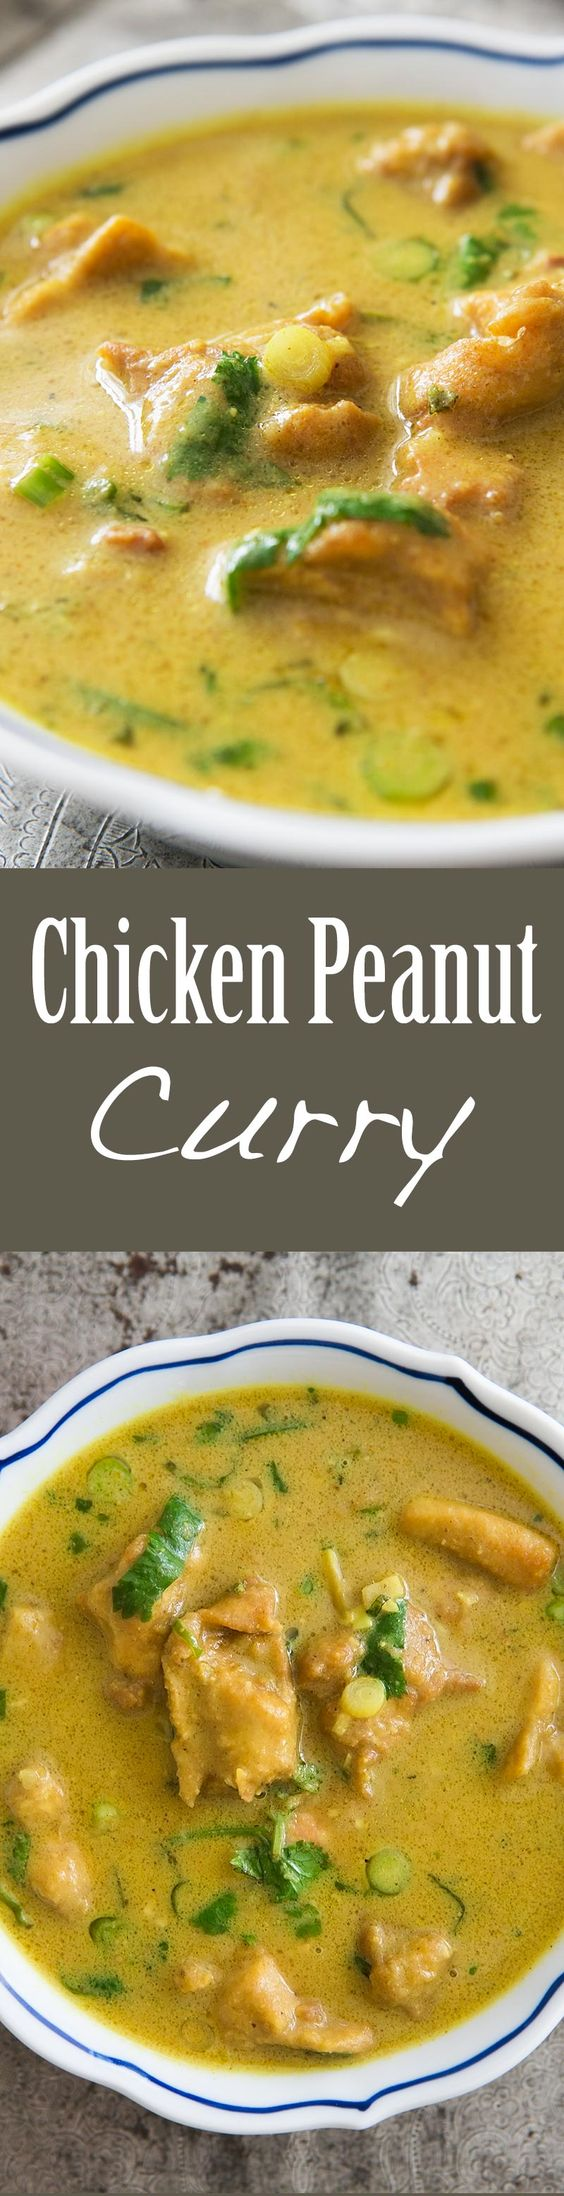 Chicken Peanut Curry ~ West African inspired chicken peanut curry ...